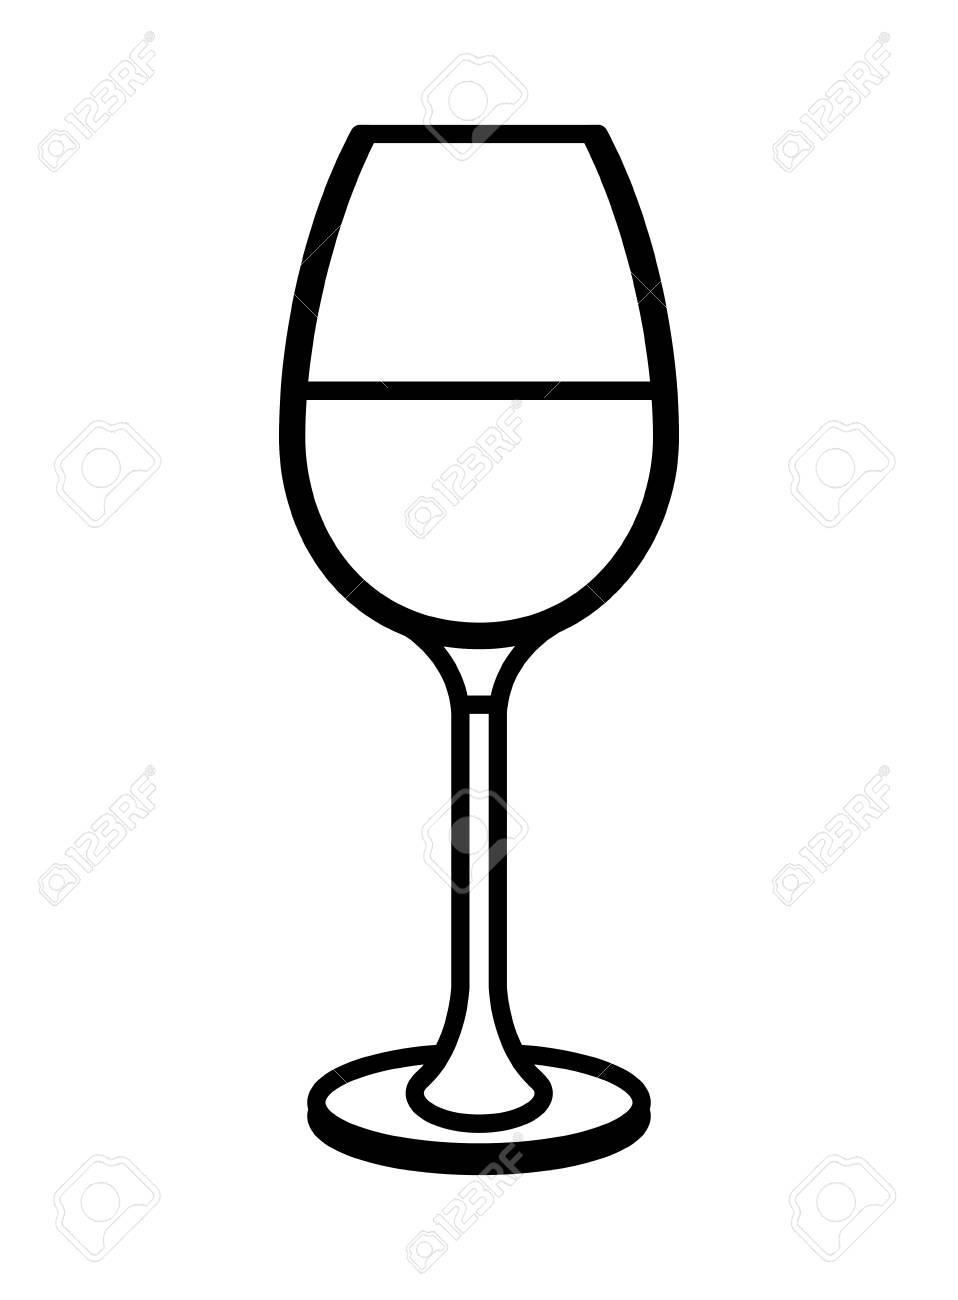 Wine Glass Icon Illustration Outline Royalty Free Cliparts